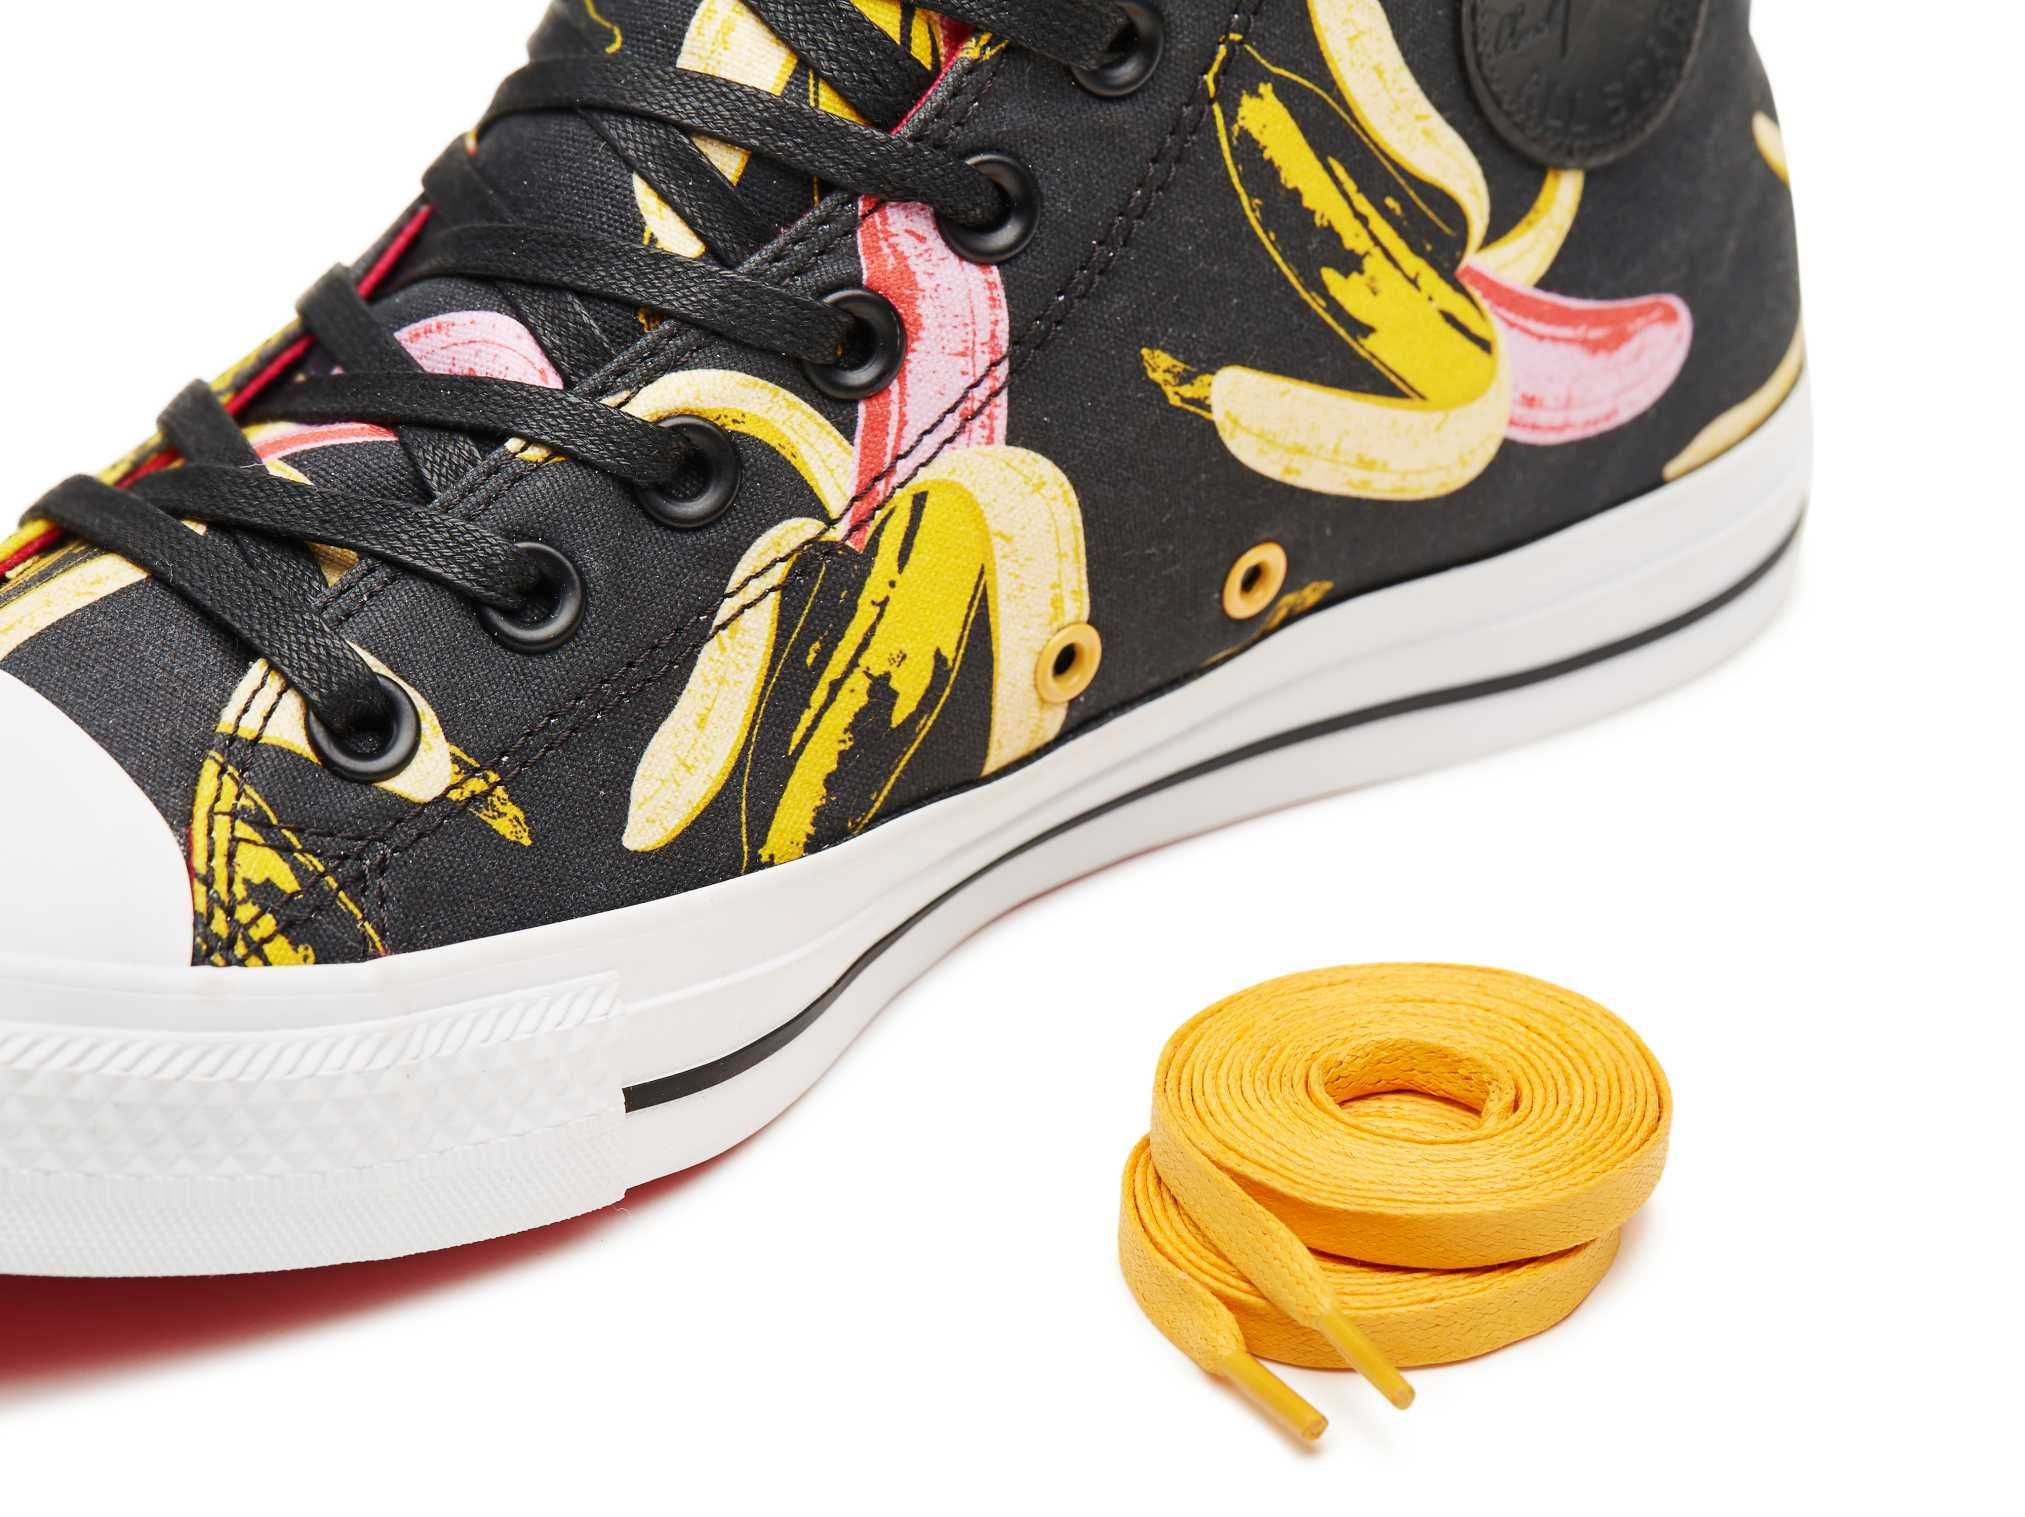 """Converse & CLOT Unveil """"Year of the Monkey"""" Pack Featuring Andy Warhol Artwork."""